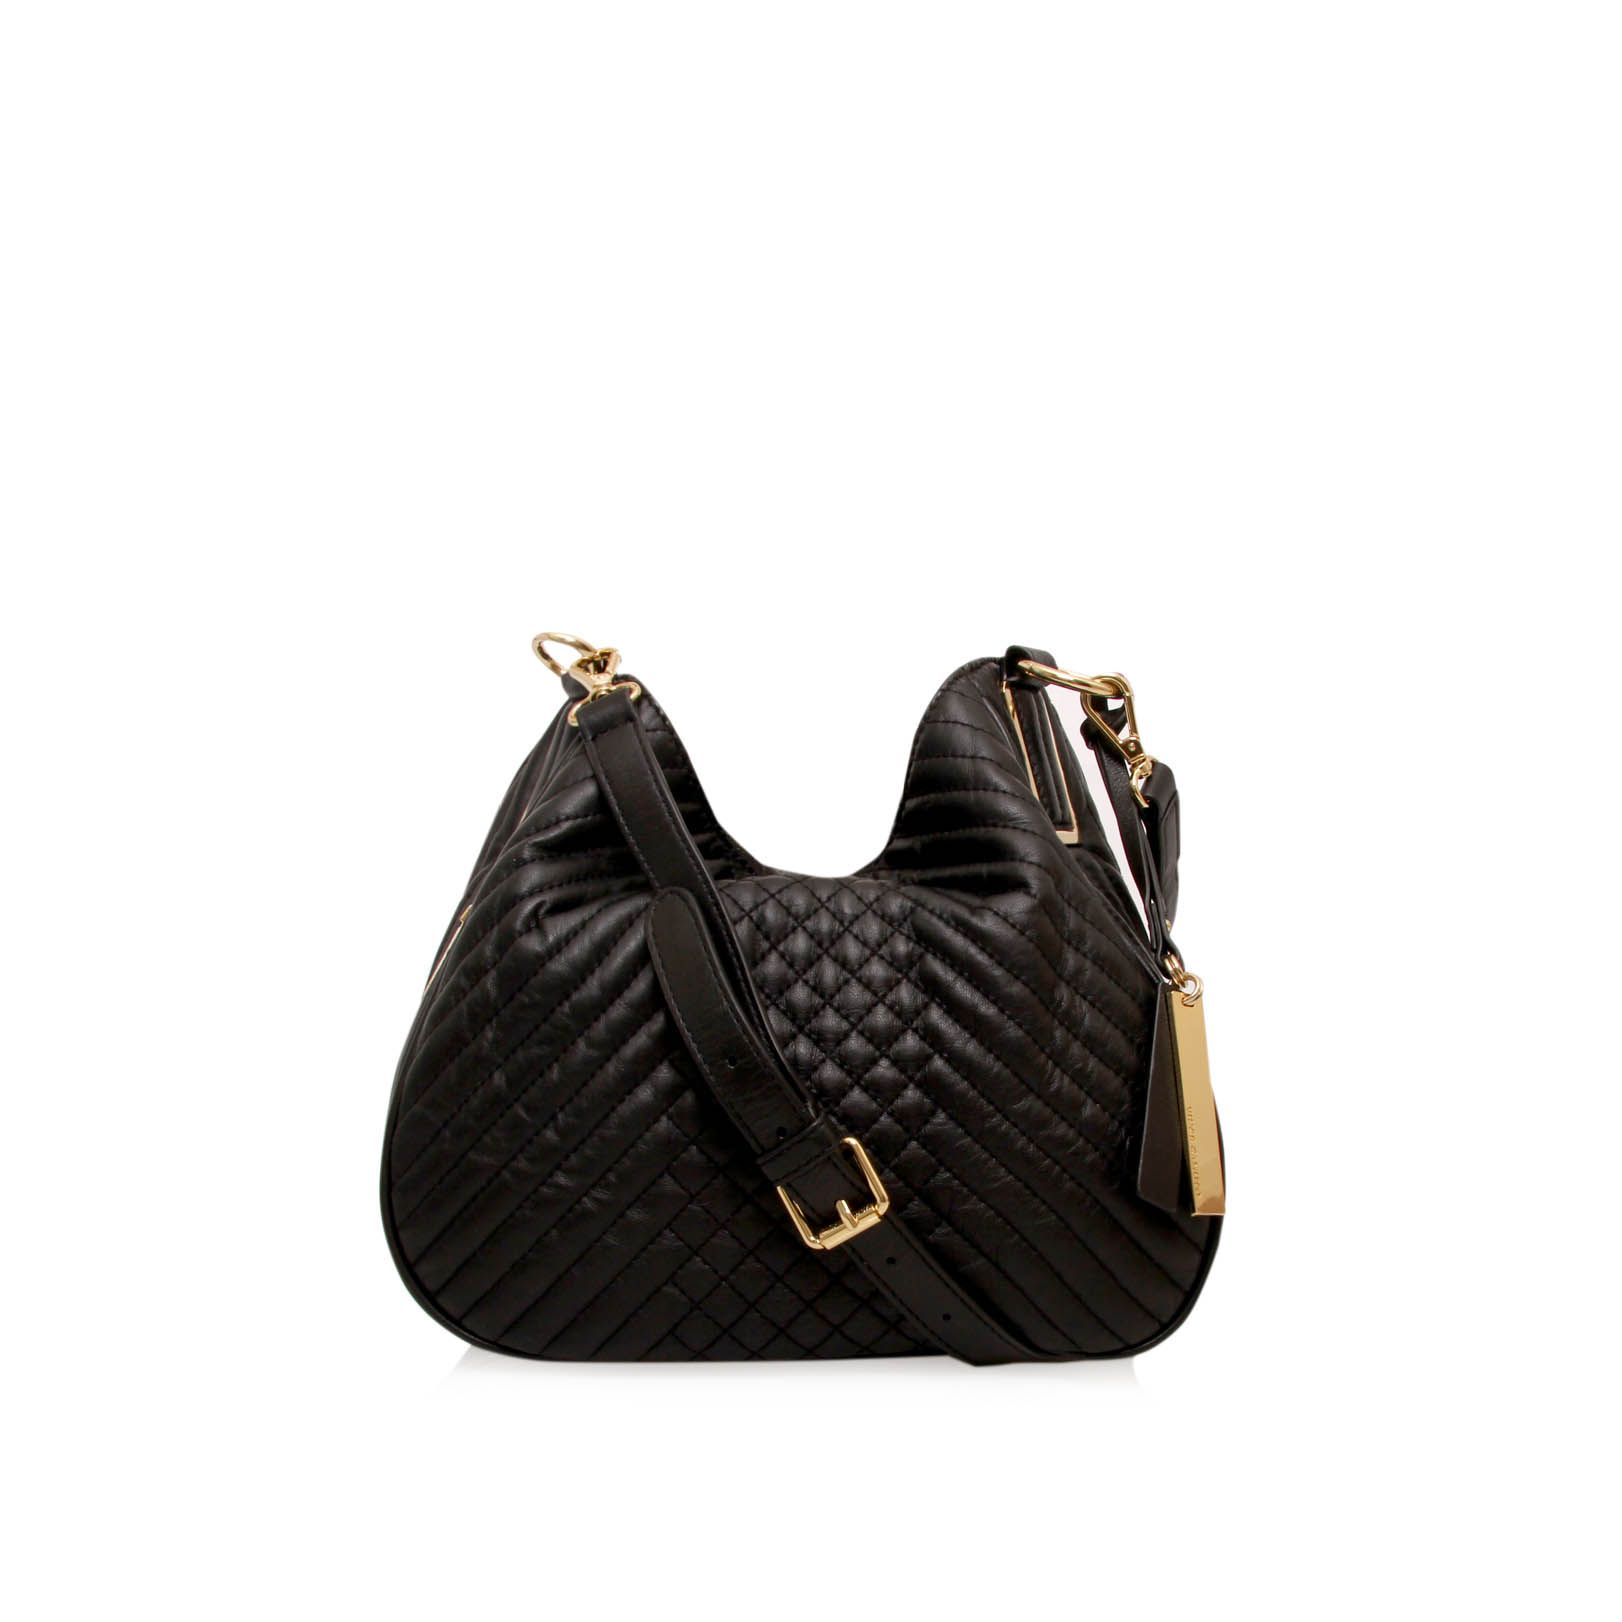 Avery crossbody bag